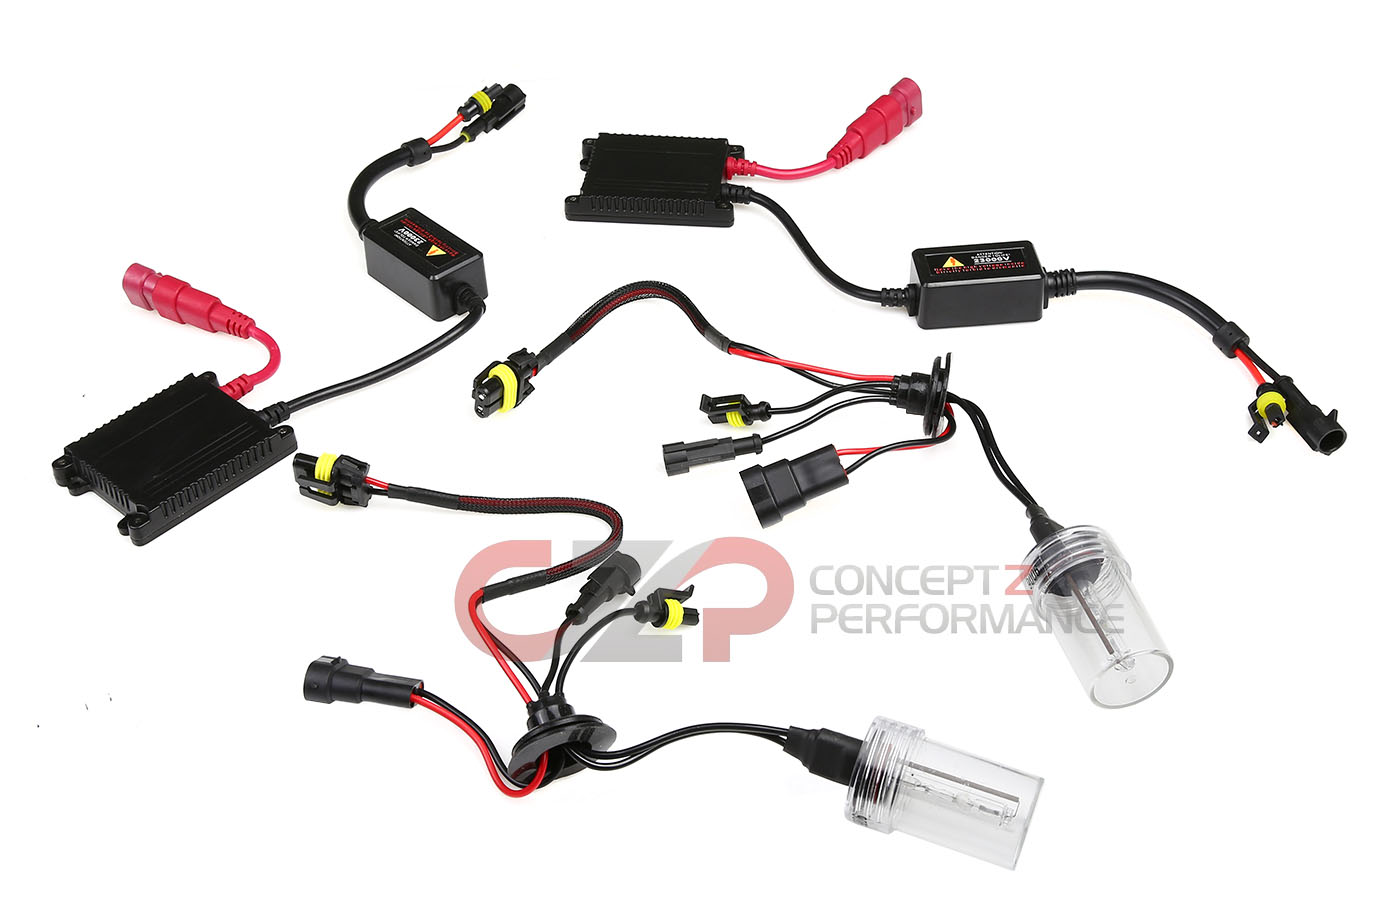 S14 Hid Wiring Real Diagram Conversion Search Concept Z Performance Rh Conceptzperformance Com Headlight Schematic